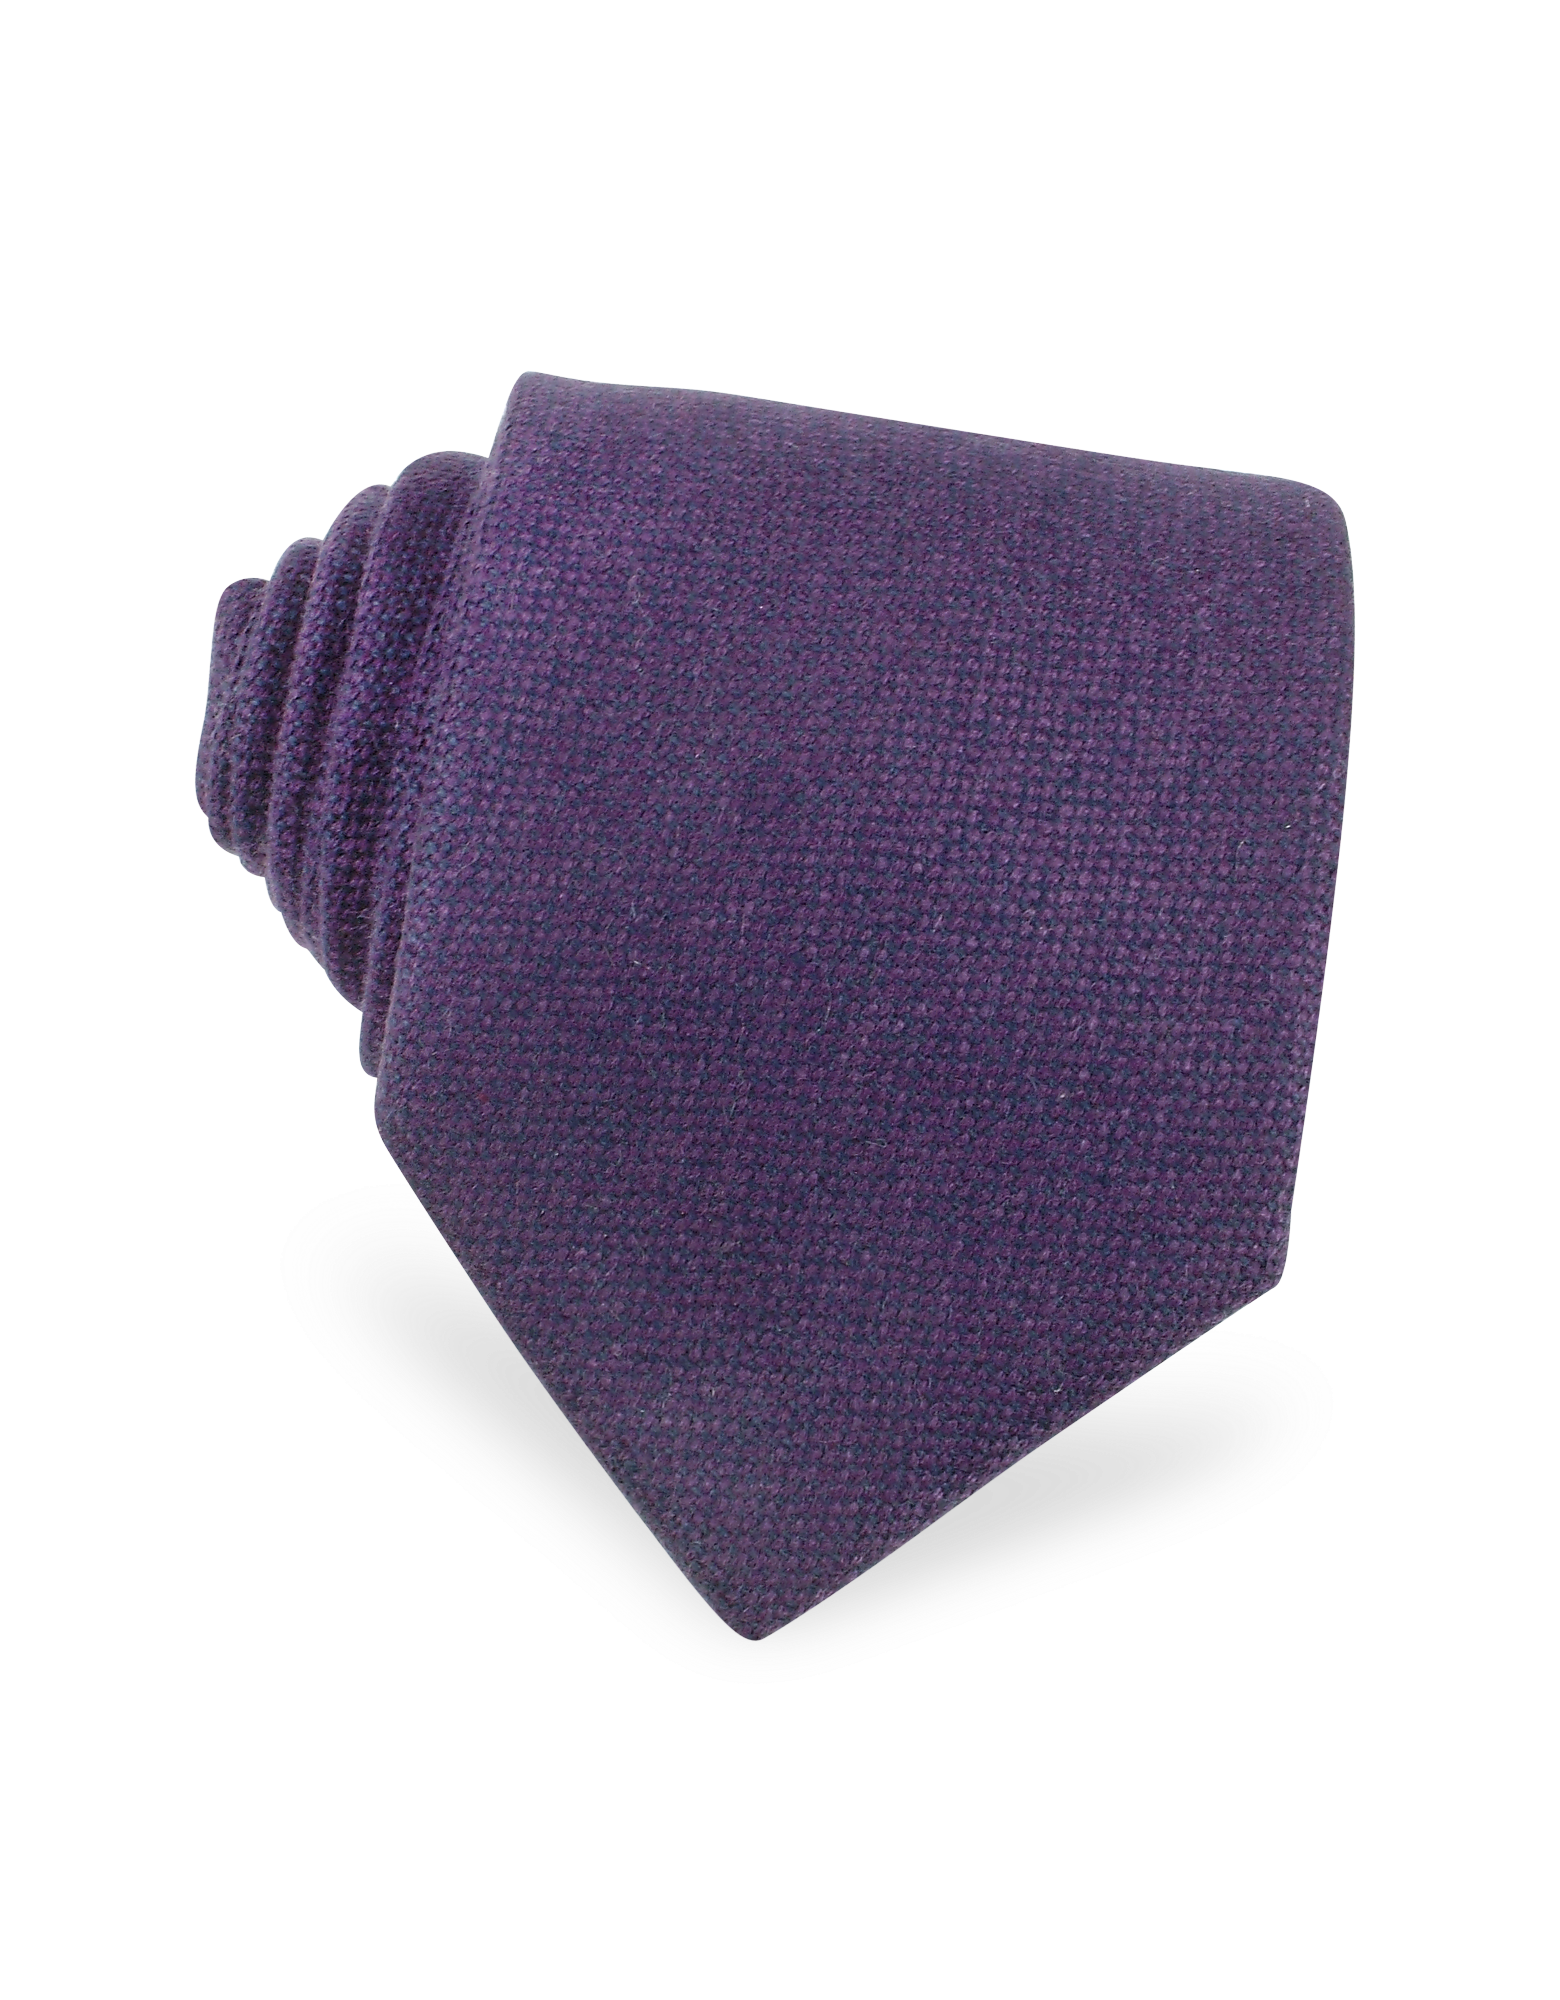 Image of Solid Purple Cashmere Tie